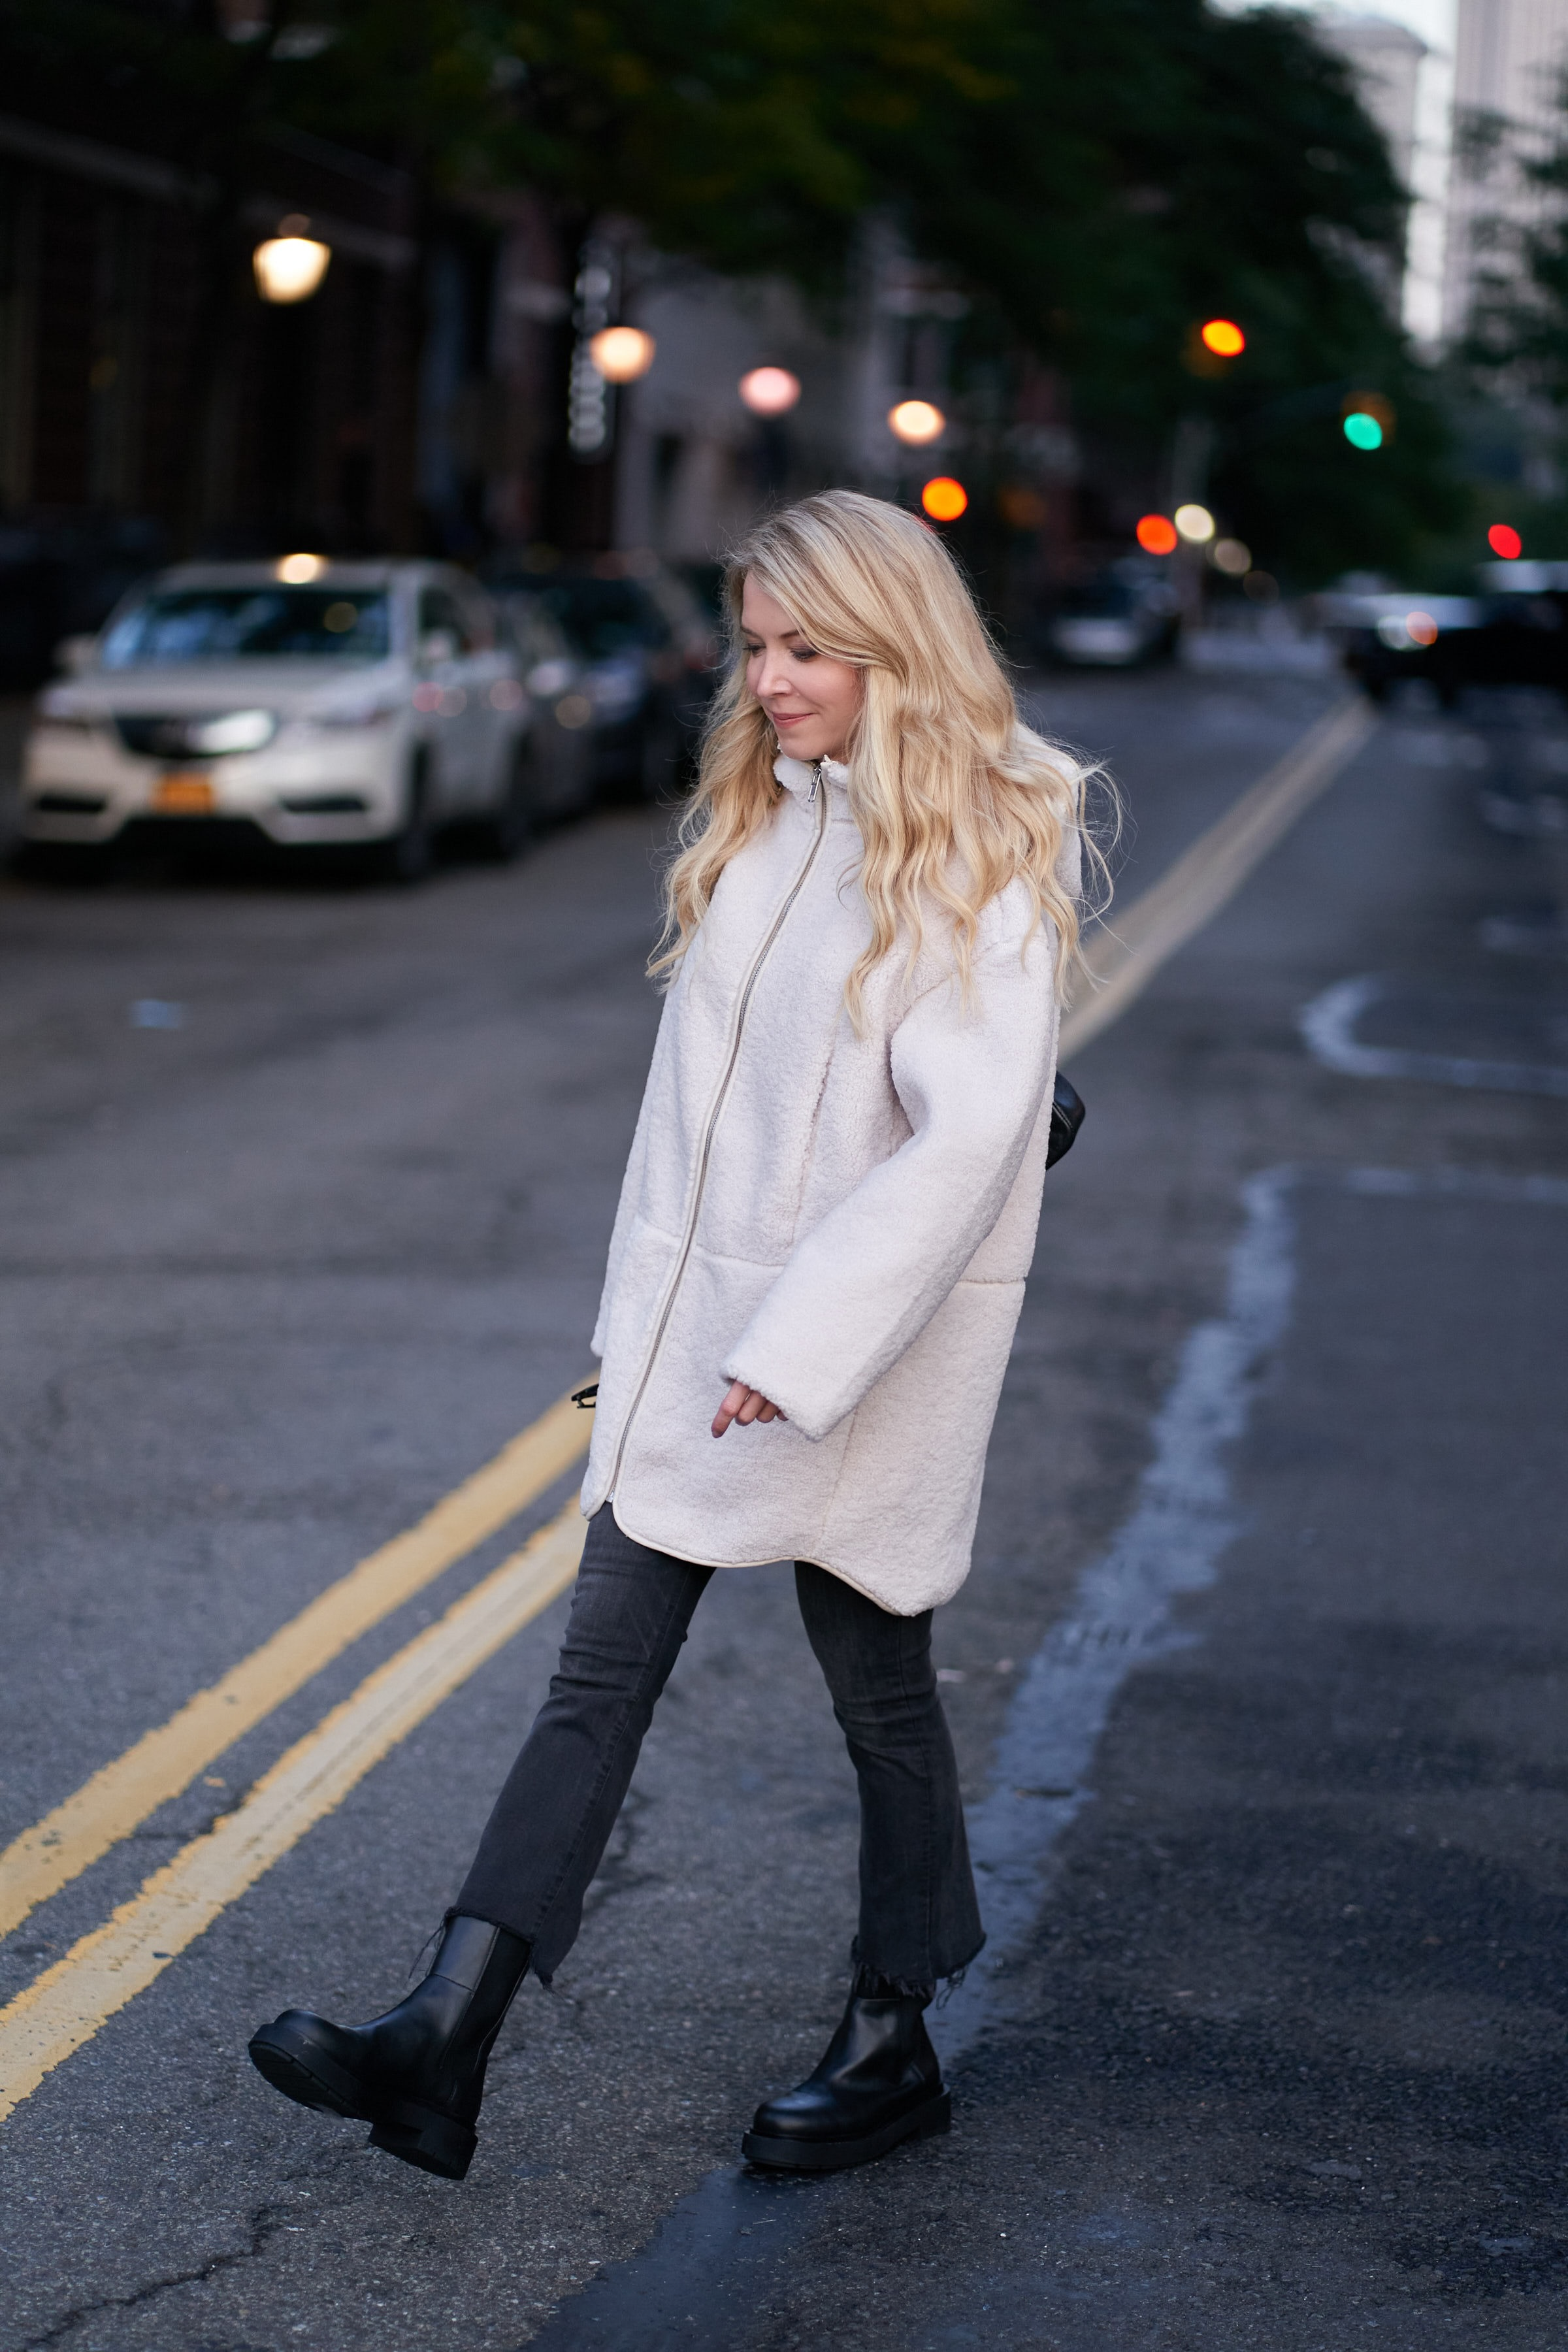 Laura Bonner, Lug sole Chelsea Boot, H&M hooded faux shearling jacket, About the Outfits, www.abouttheoutfits.com